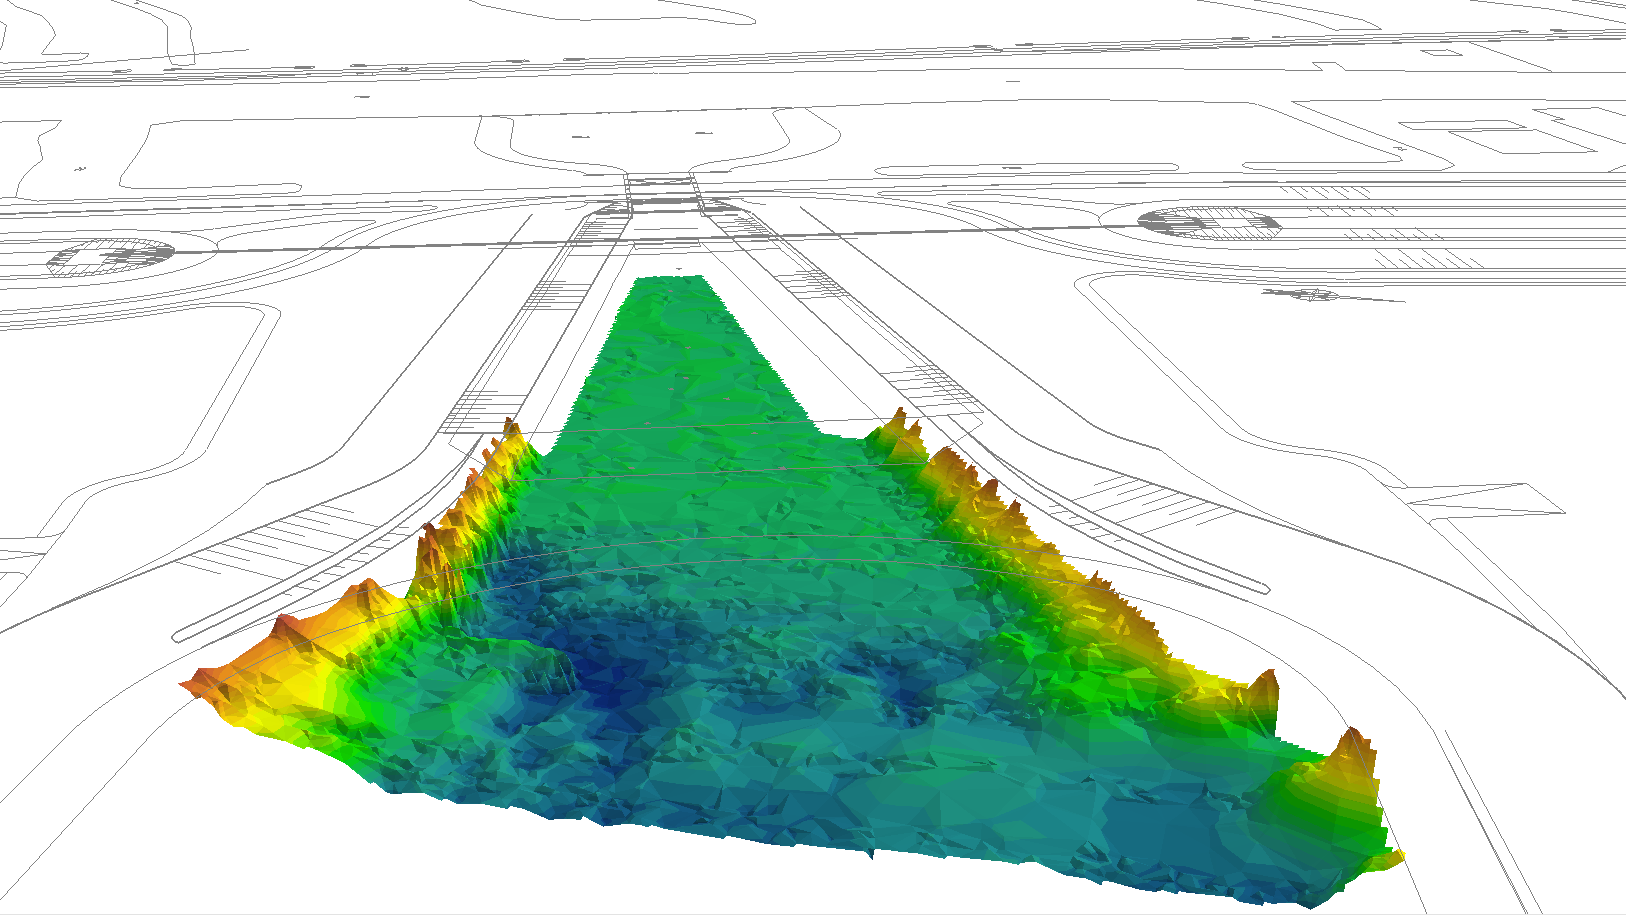 Current and erosion measurements for inlet design verification